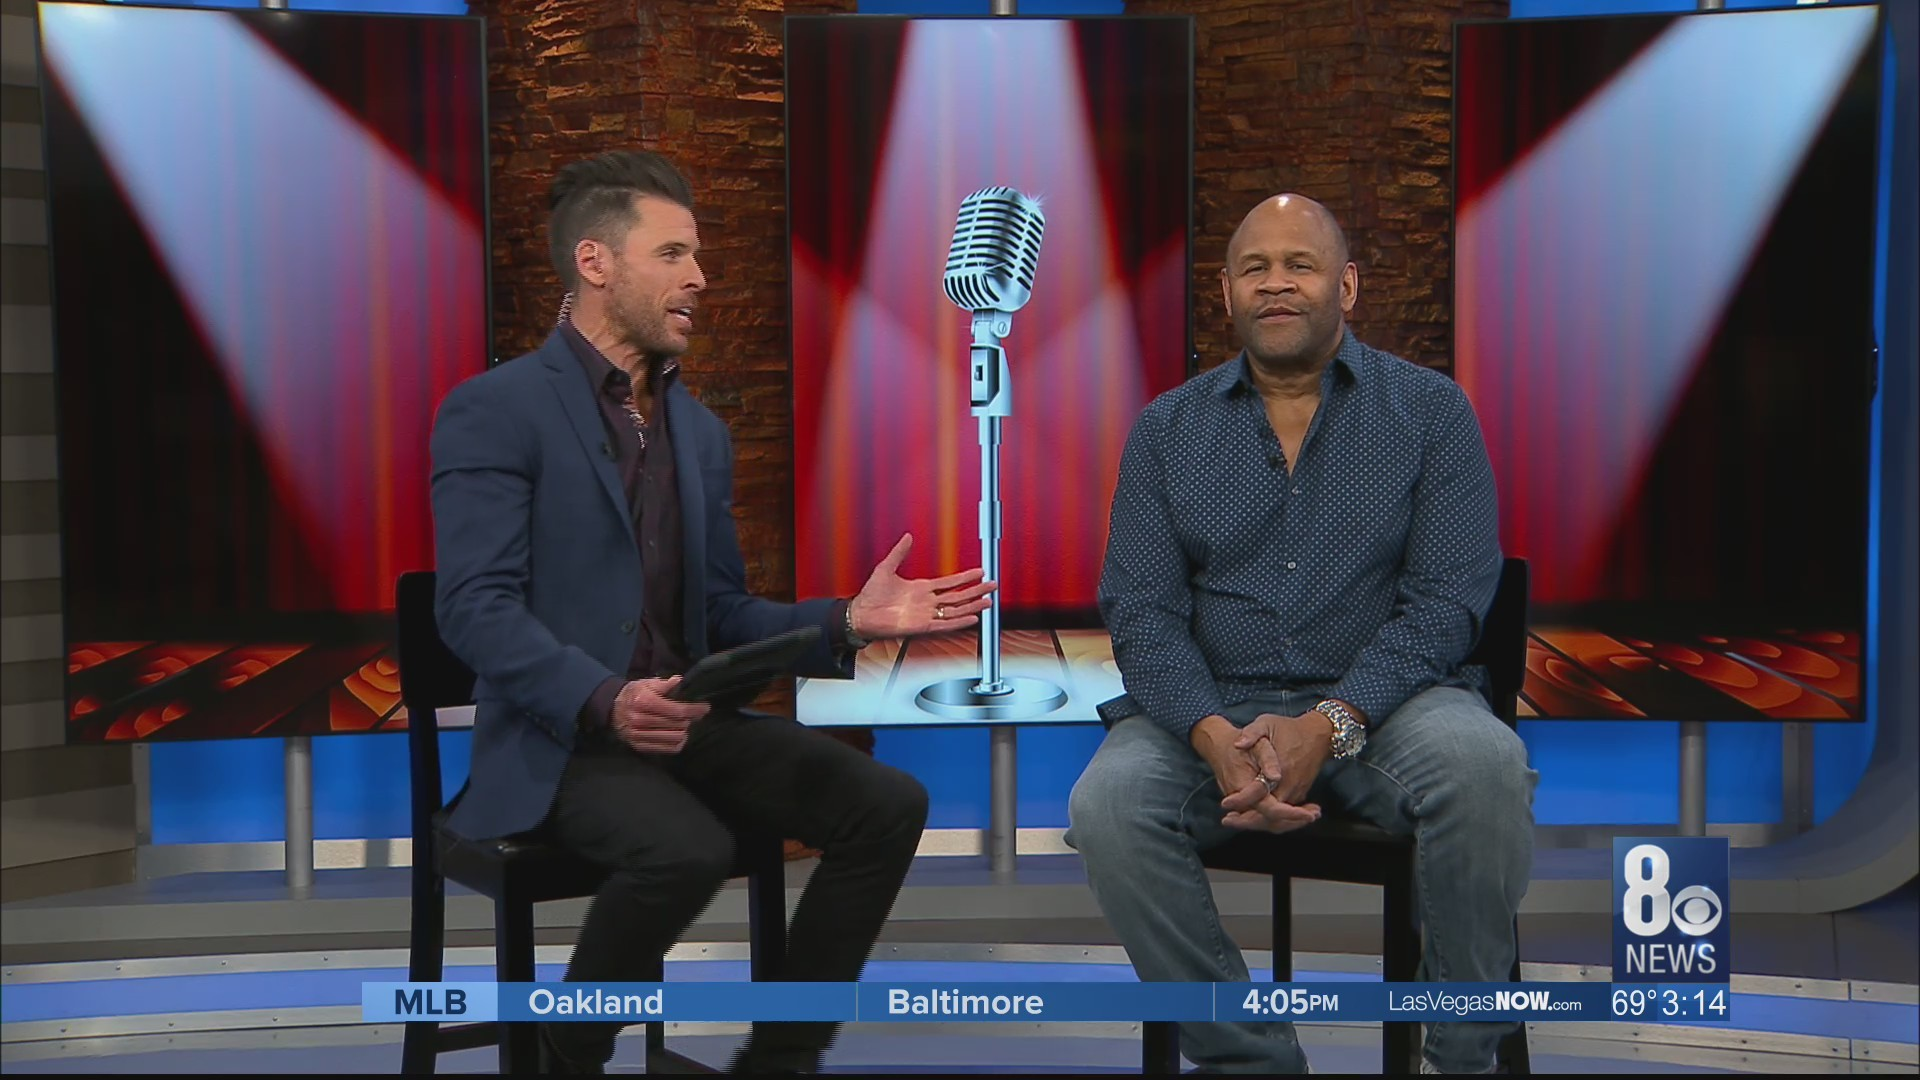 Comedian Rondell Sheridan is coming to the Laugh Factory